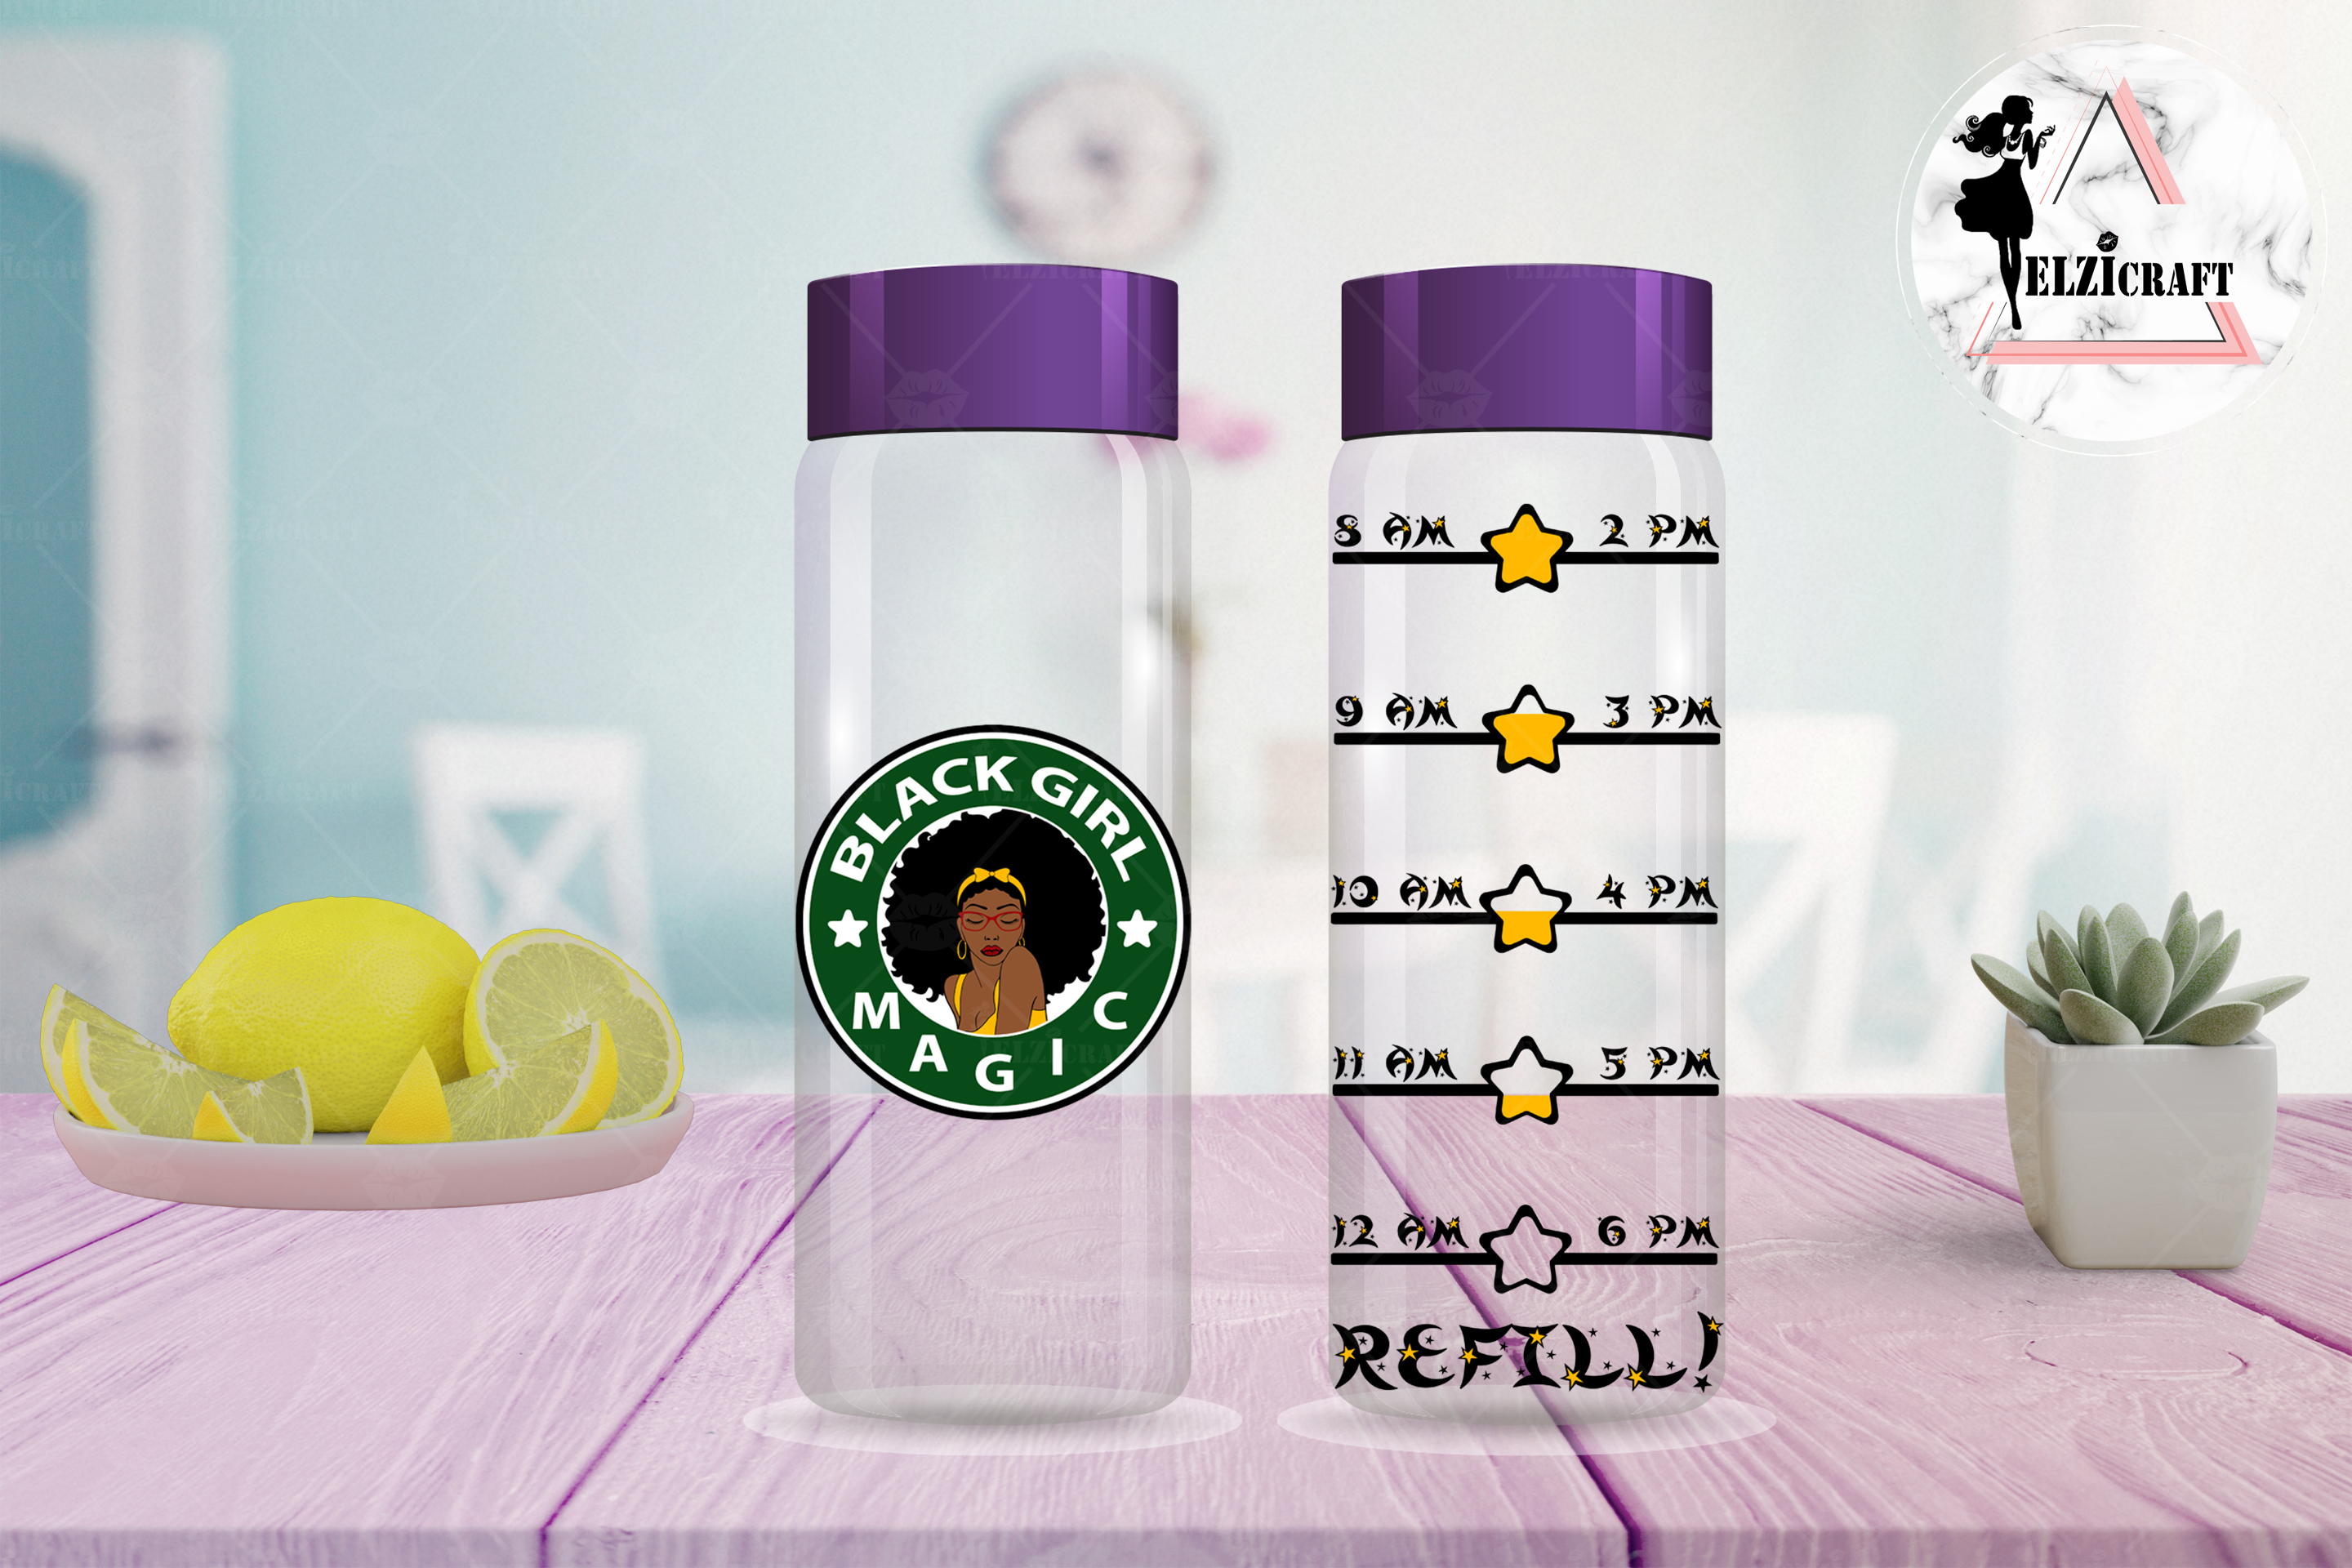 Water Bottle Tracker Black Girl Magic, Afro Woman SVG Files example image 2